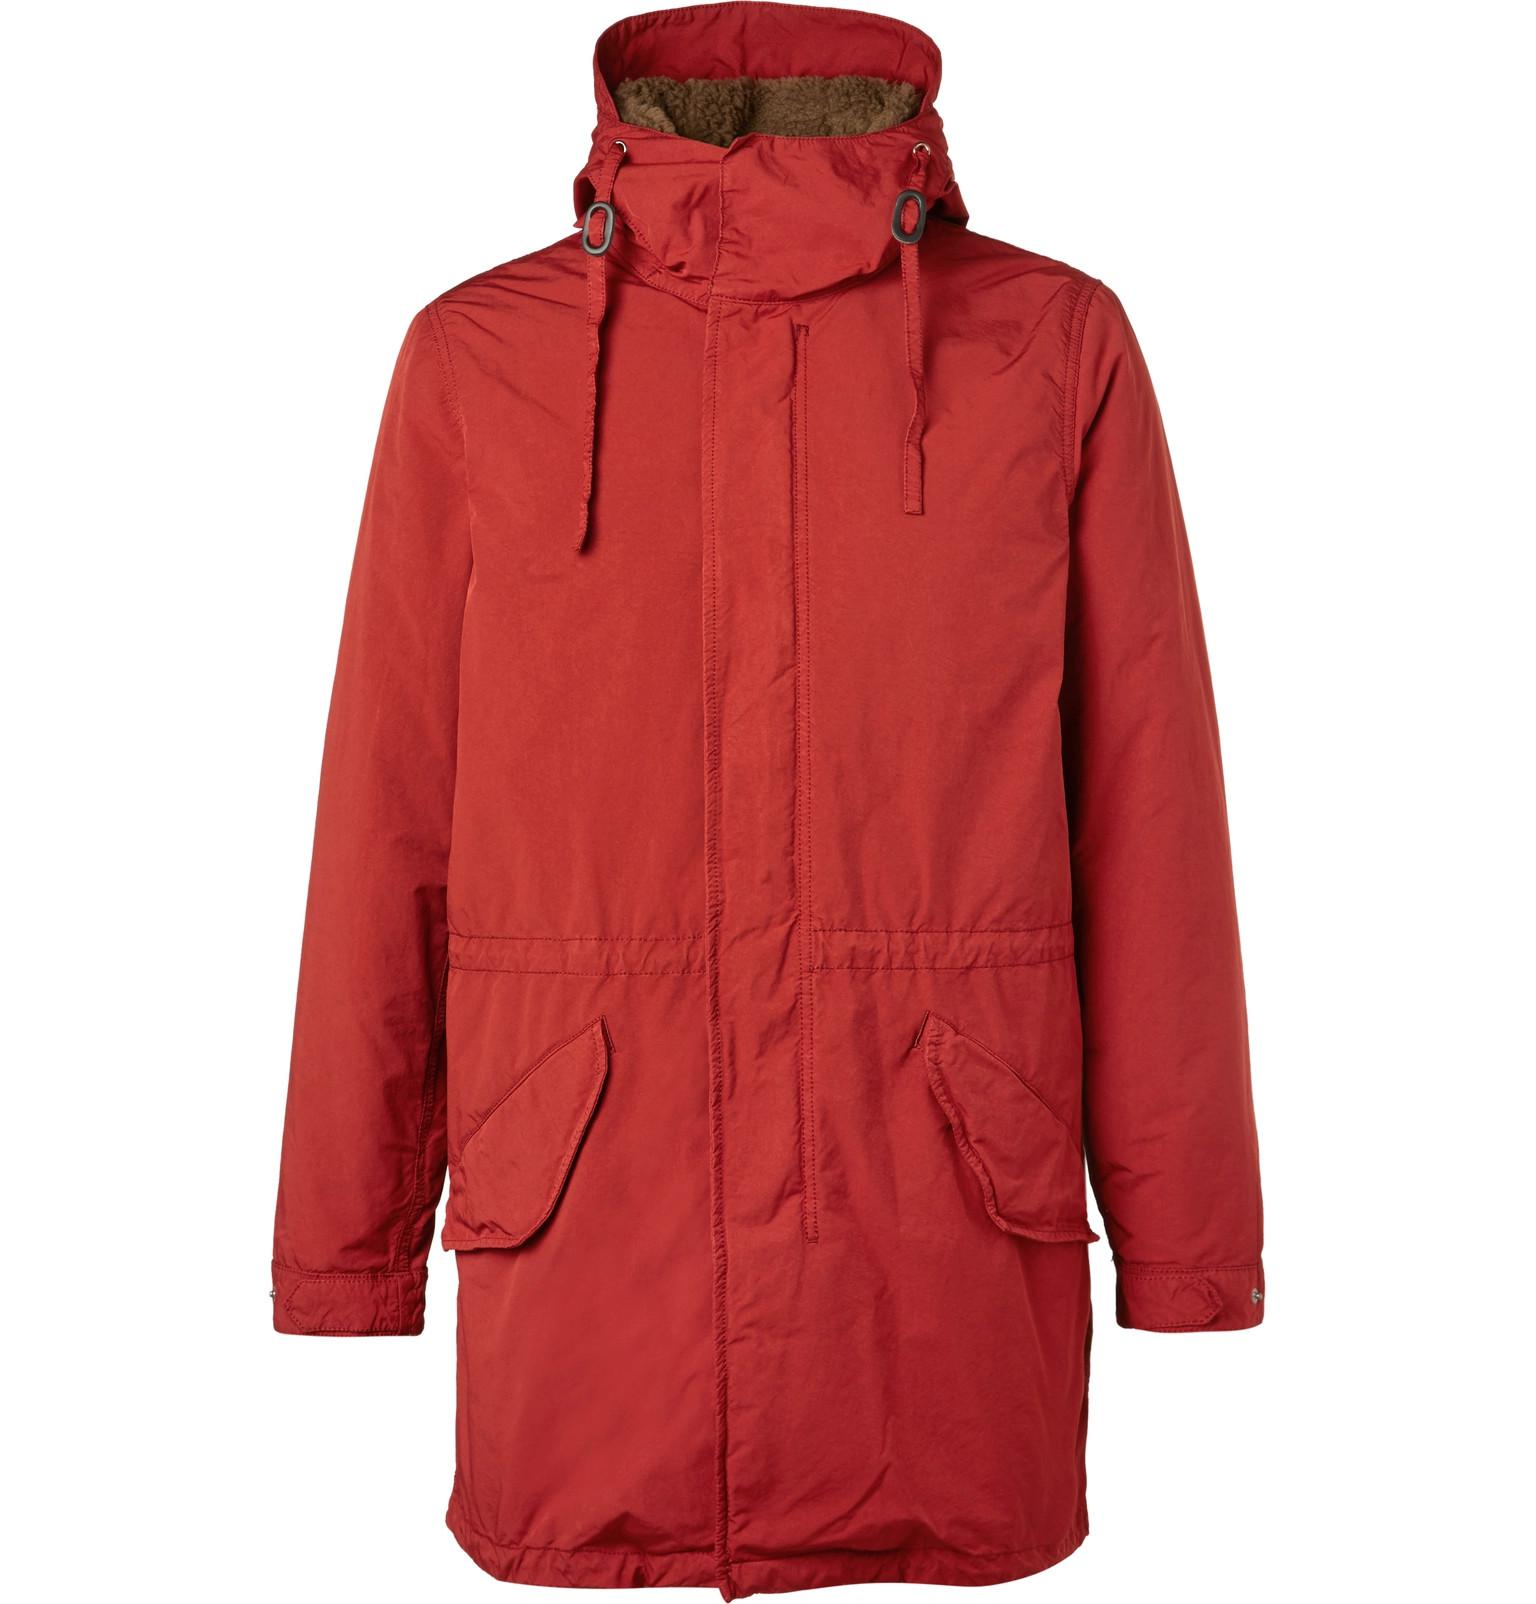 Faux In Lyst Shearling Red Parka Aspesi Lined Shell Men For Hooded qw67Zw